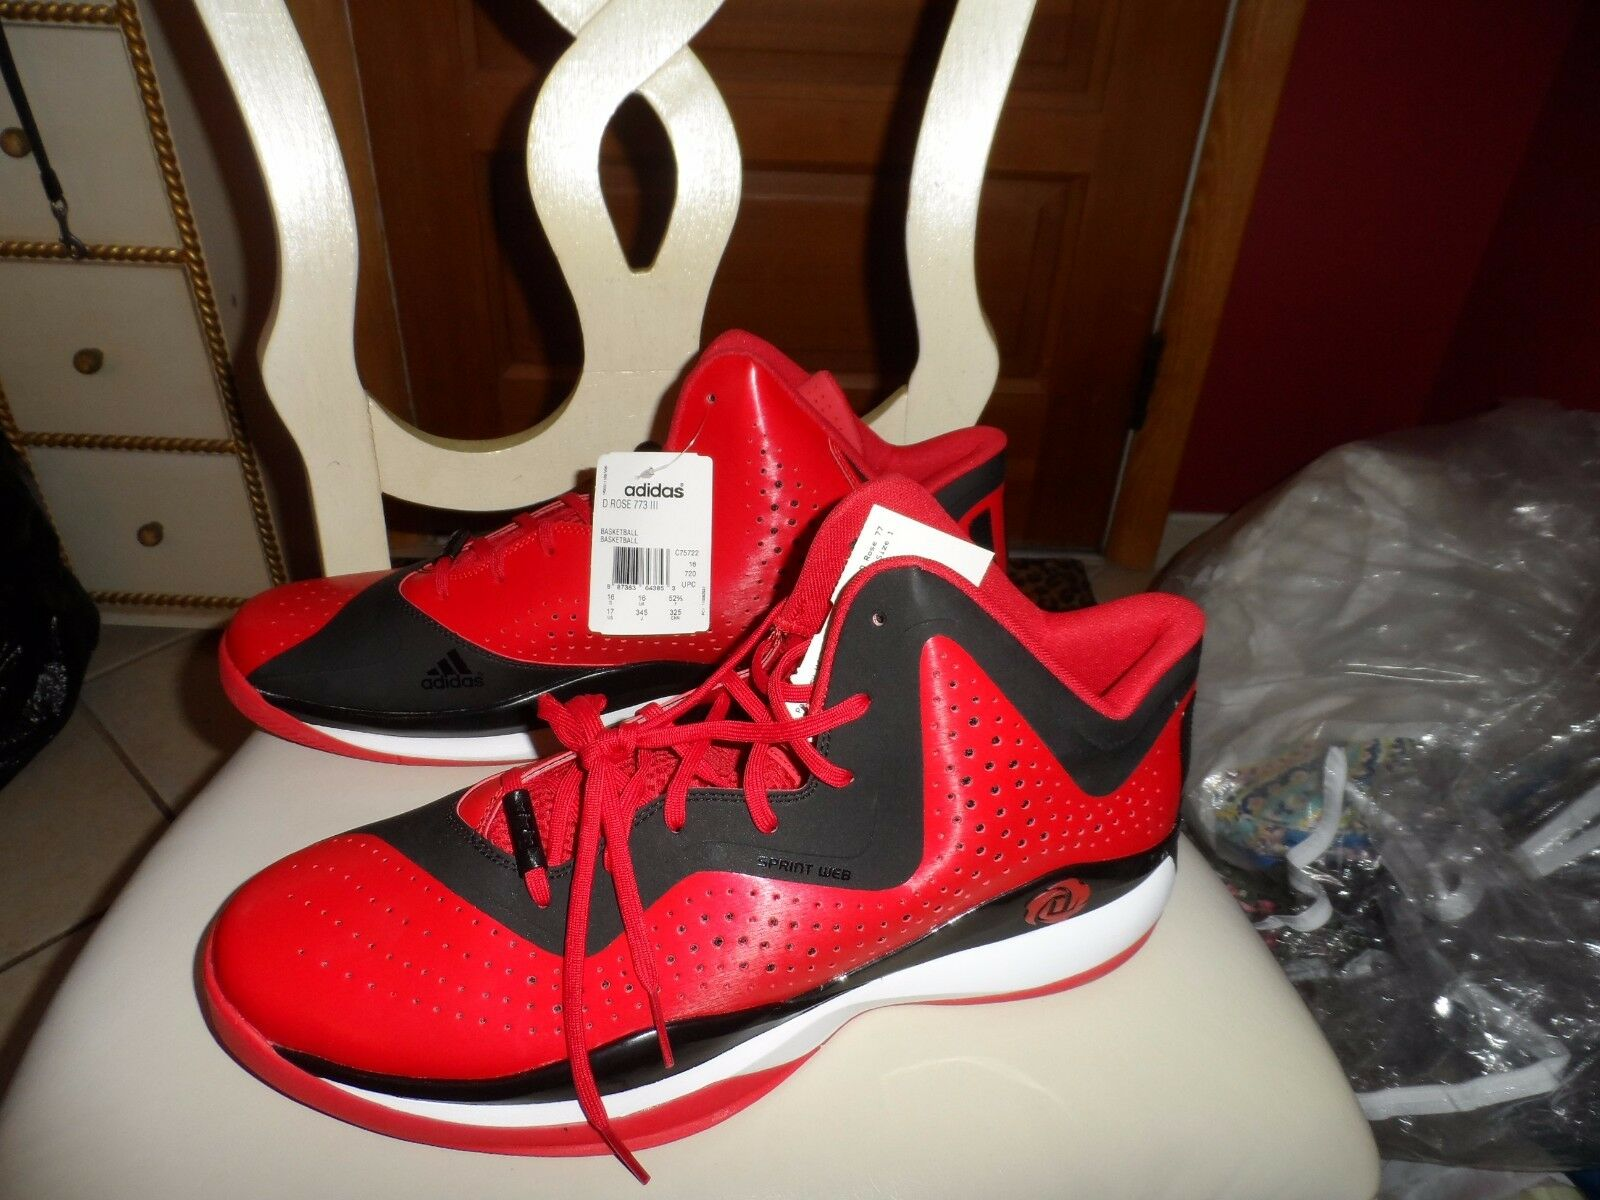 best cheap b1606 ce370 Hombre Talla 17 Adidas D Rose 773 773 773 III Rojo y negro Basketball  Athletic Shoe